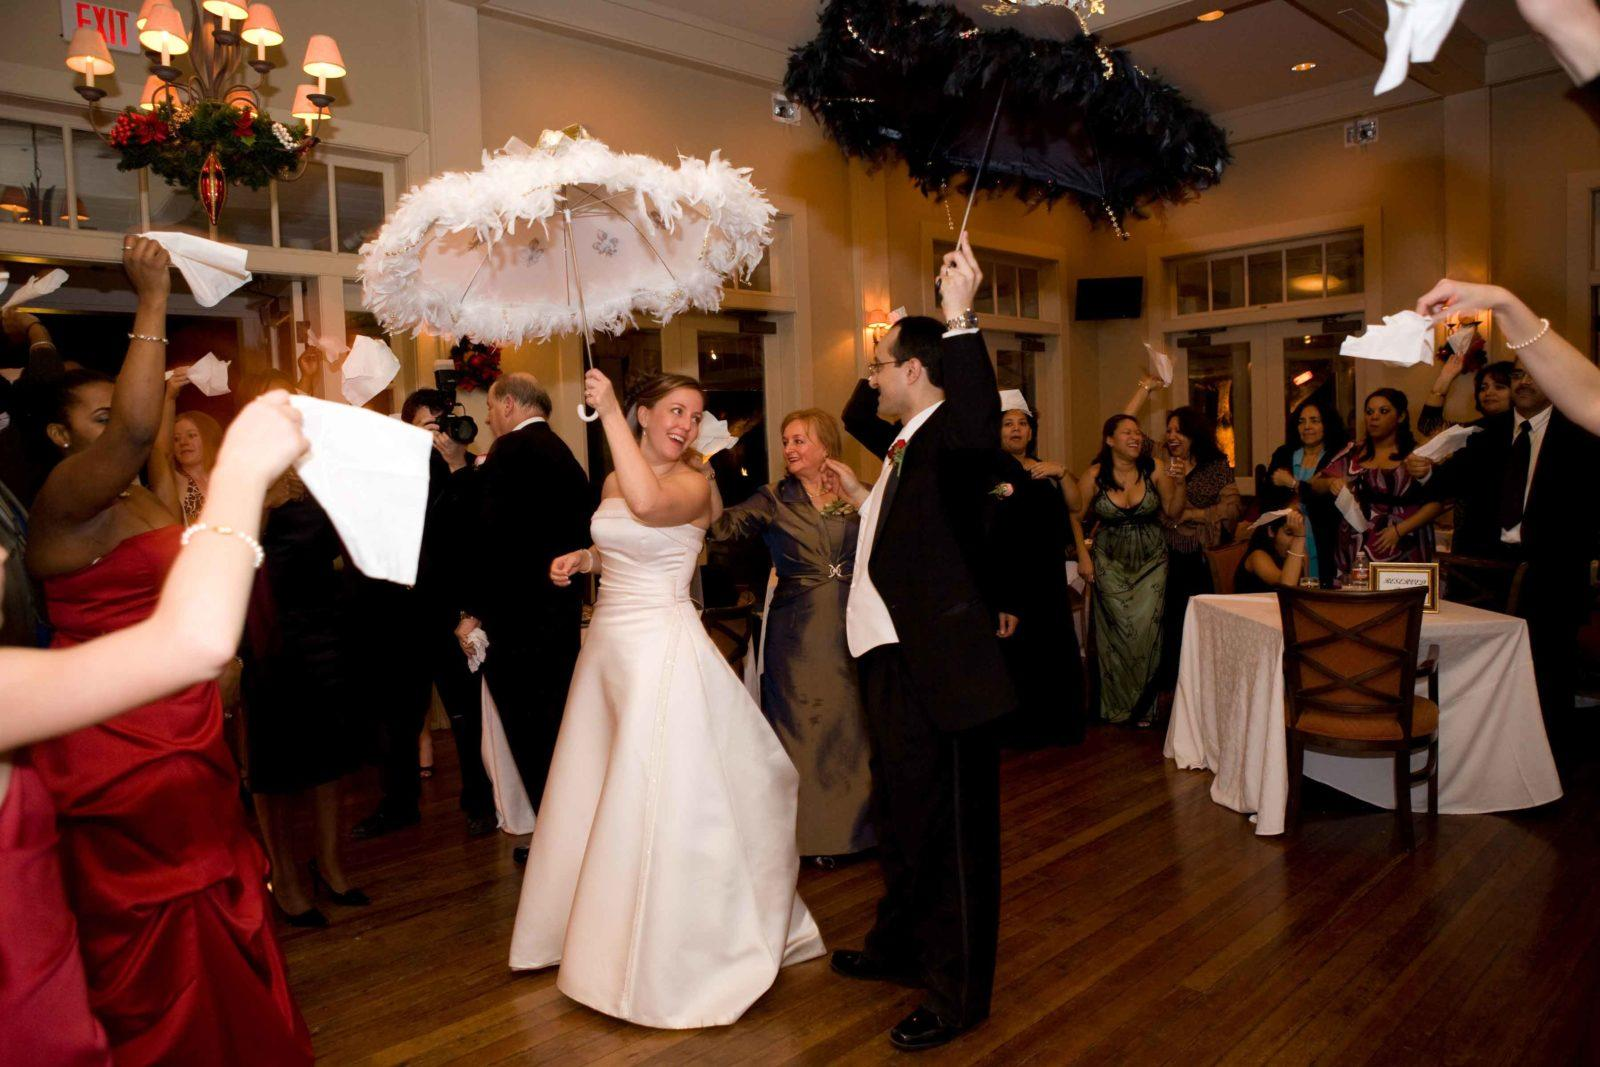 Wedding second line at Audubon Clubhouse. Photo: Studio Tran